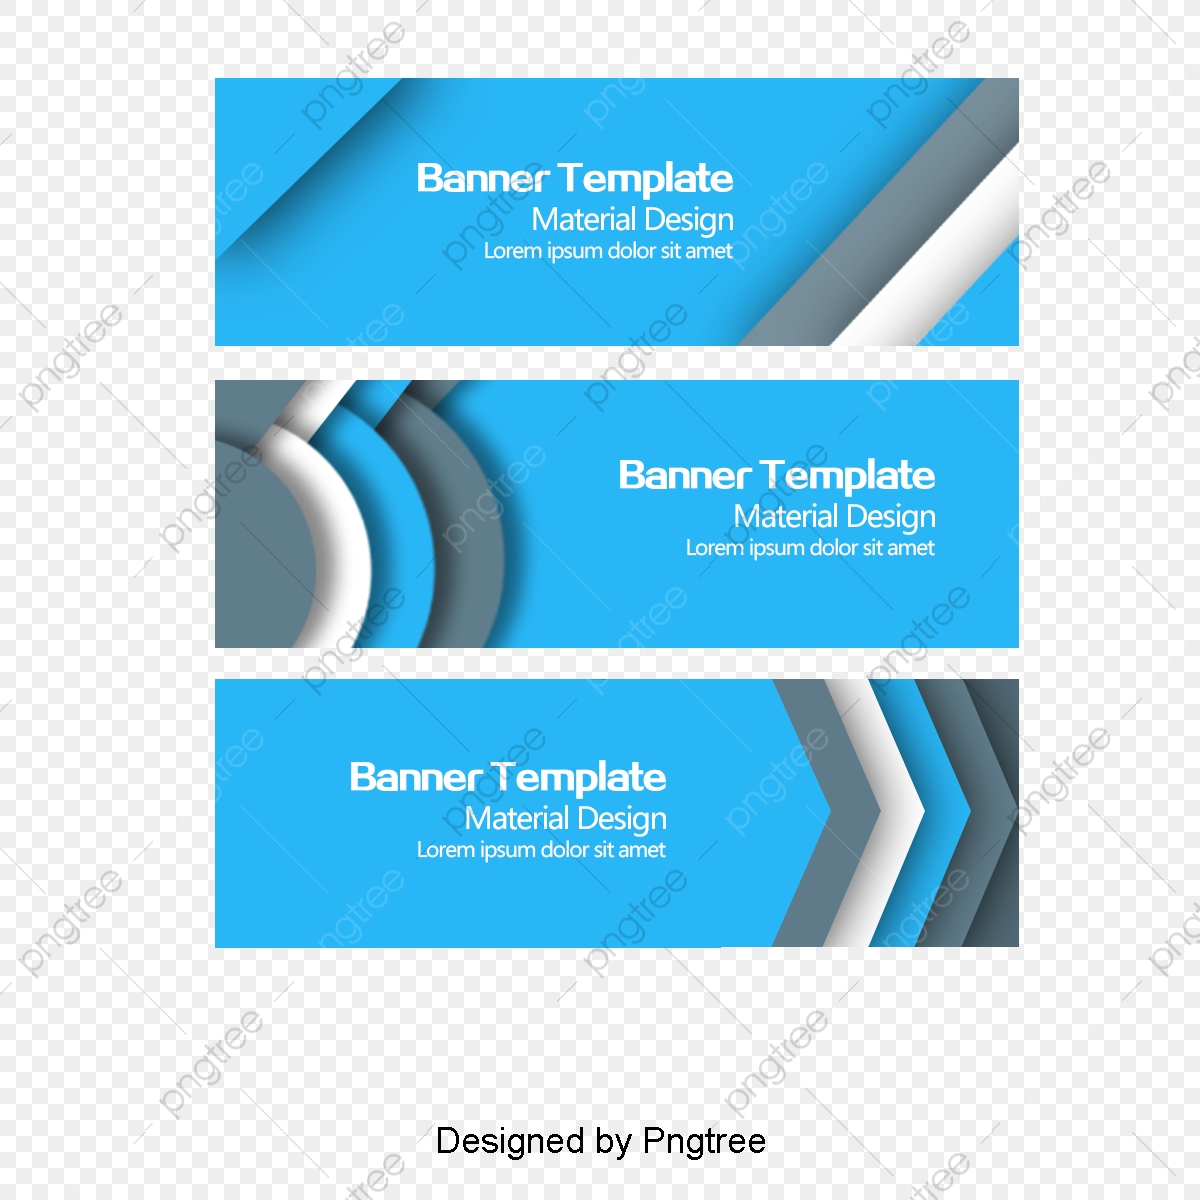 Banners Colorful Fashion Banner Creative Banner Templates